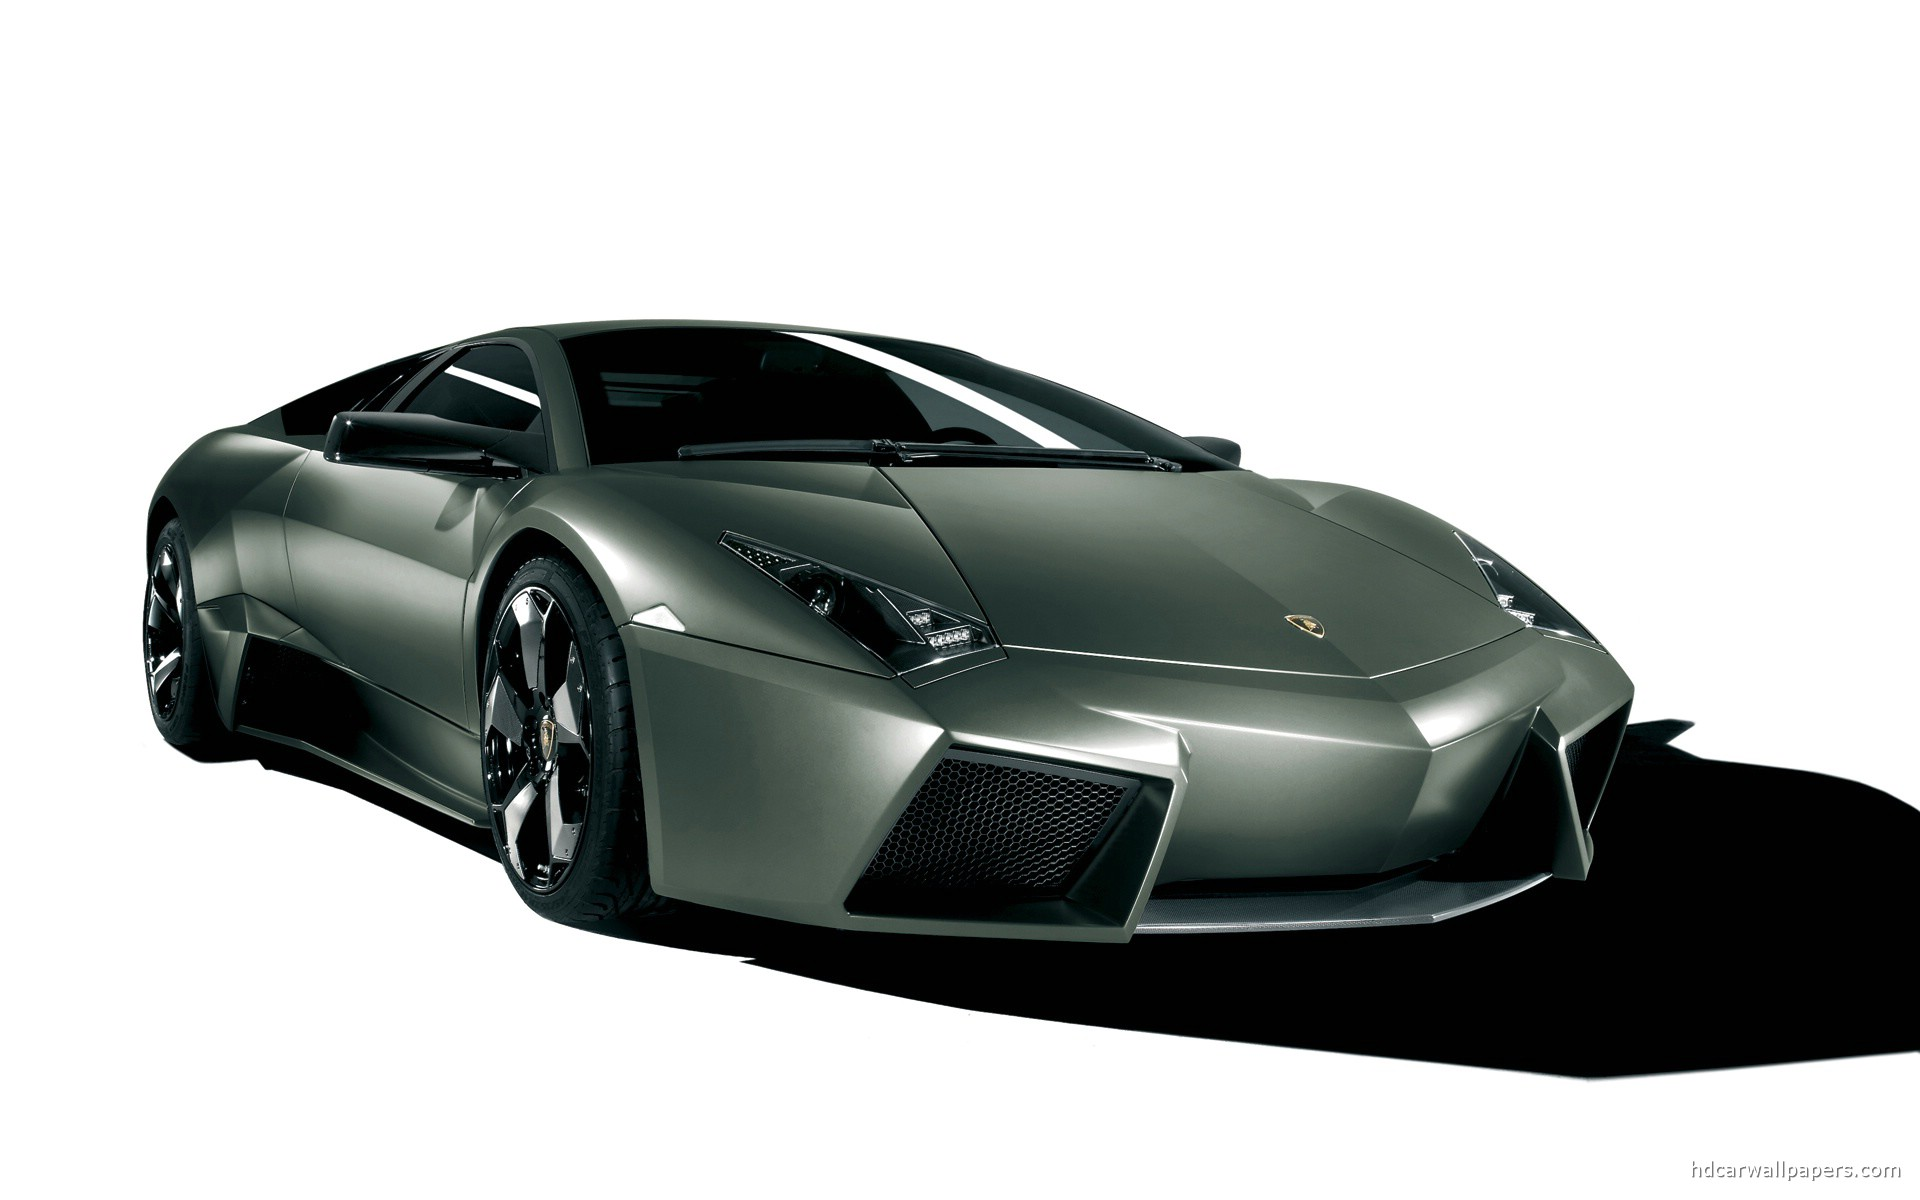 lamborghini reventon wallpaper high definition high quality widescreen. Black Bedroom Furniture Sets. Home Design Ideas